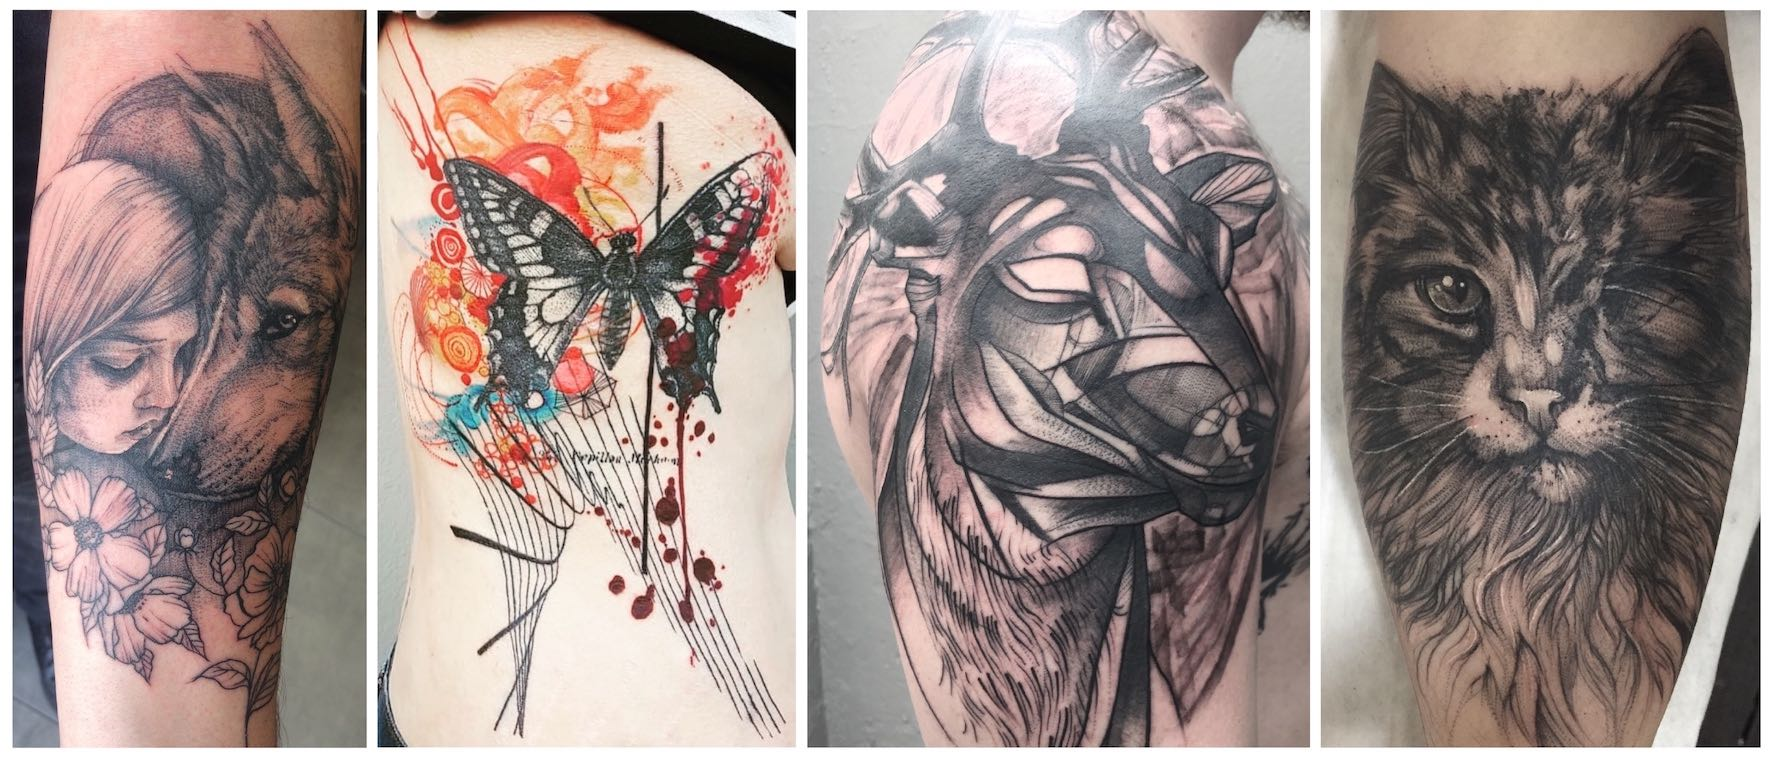 A selection of illustrative tattoos done by Lauren Peachfish